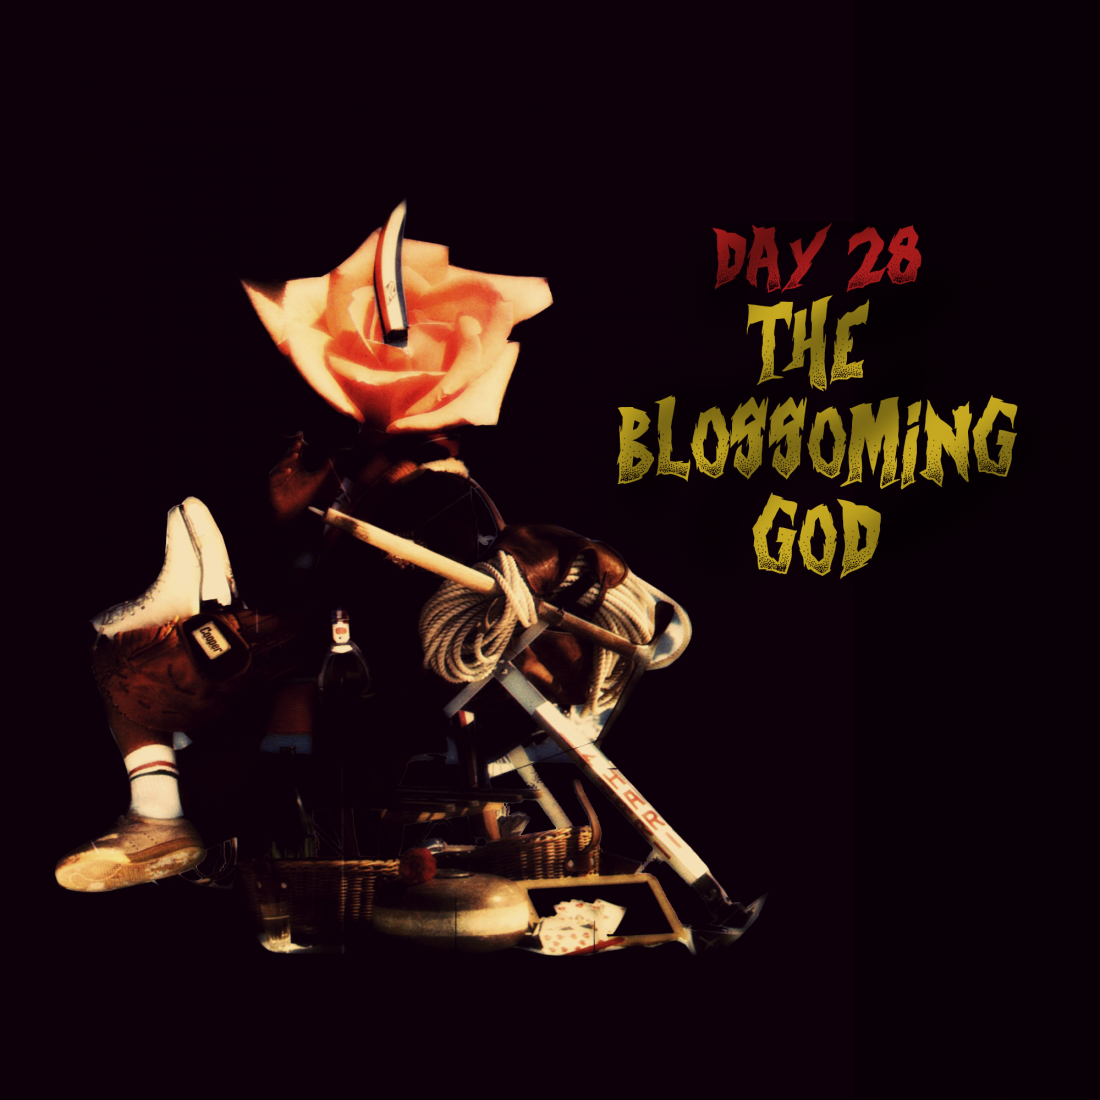 drawlloween-28-the-blossoming-god